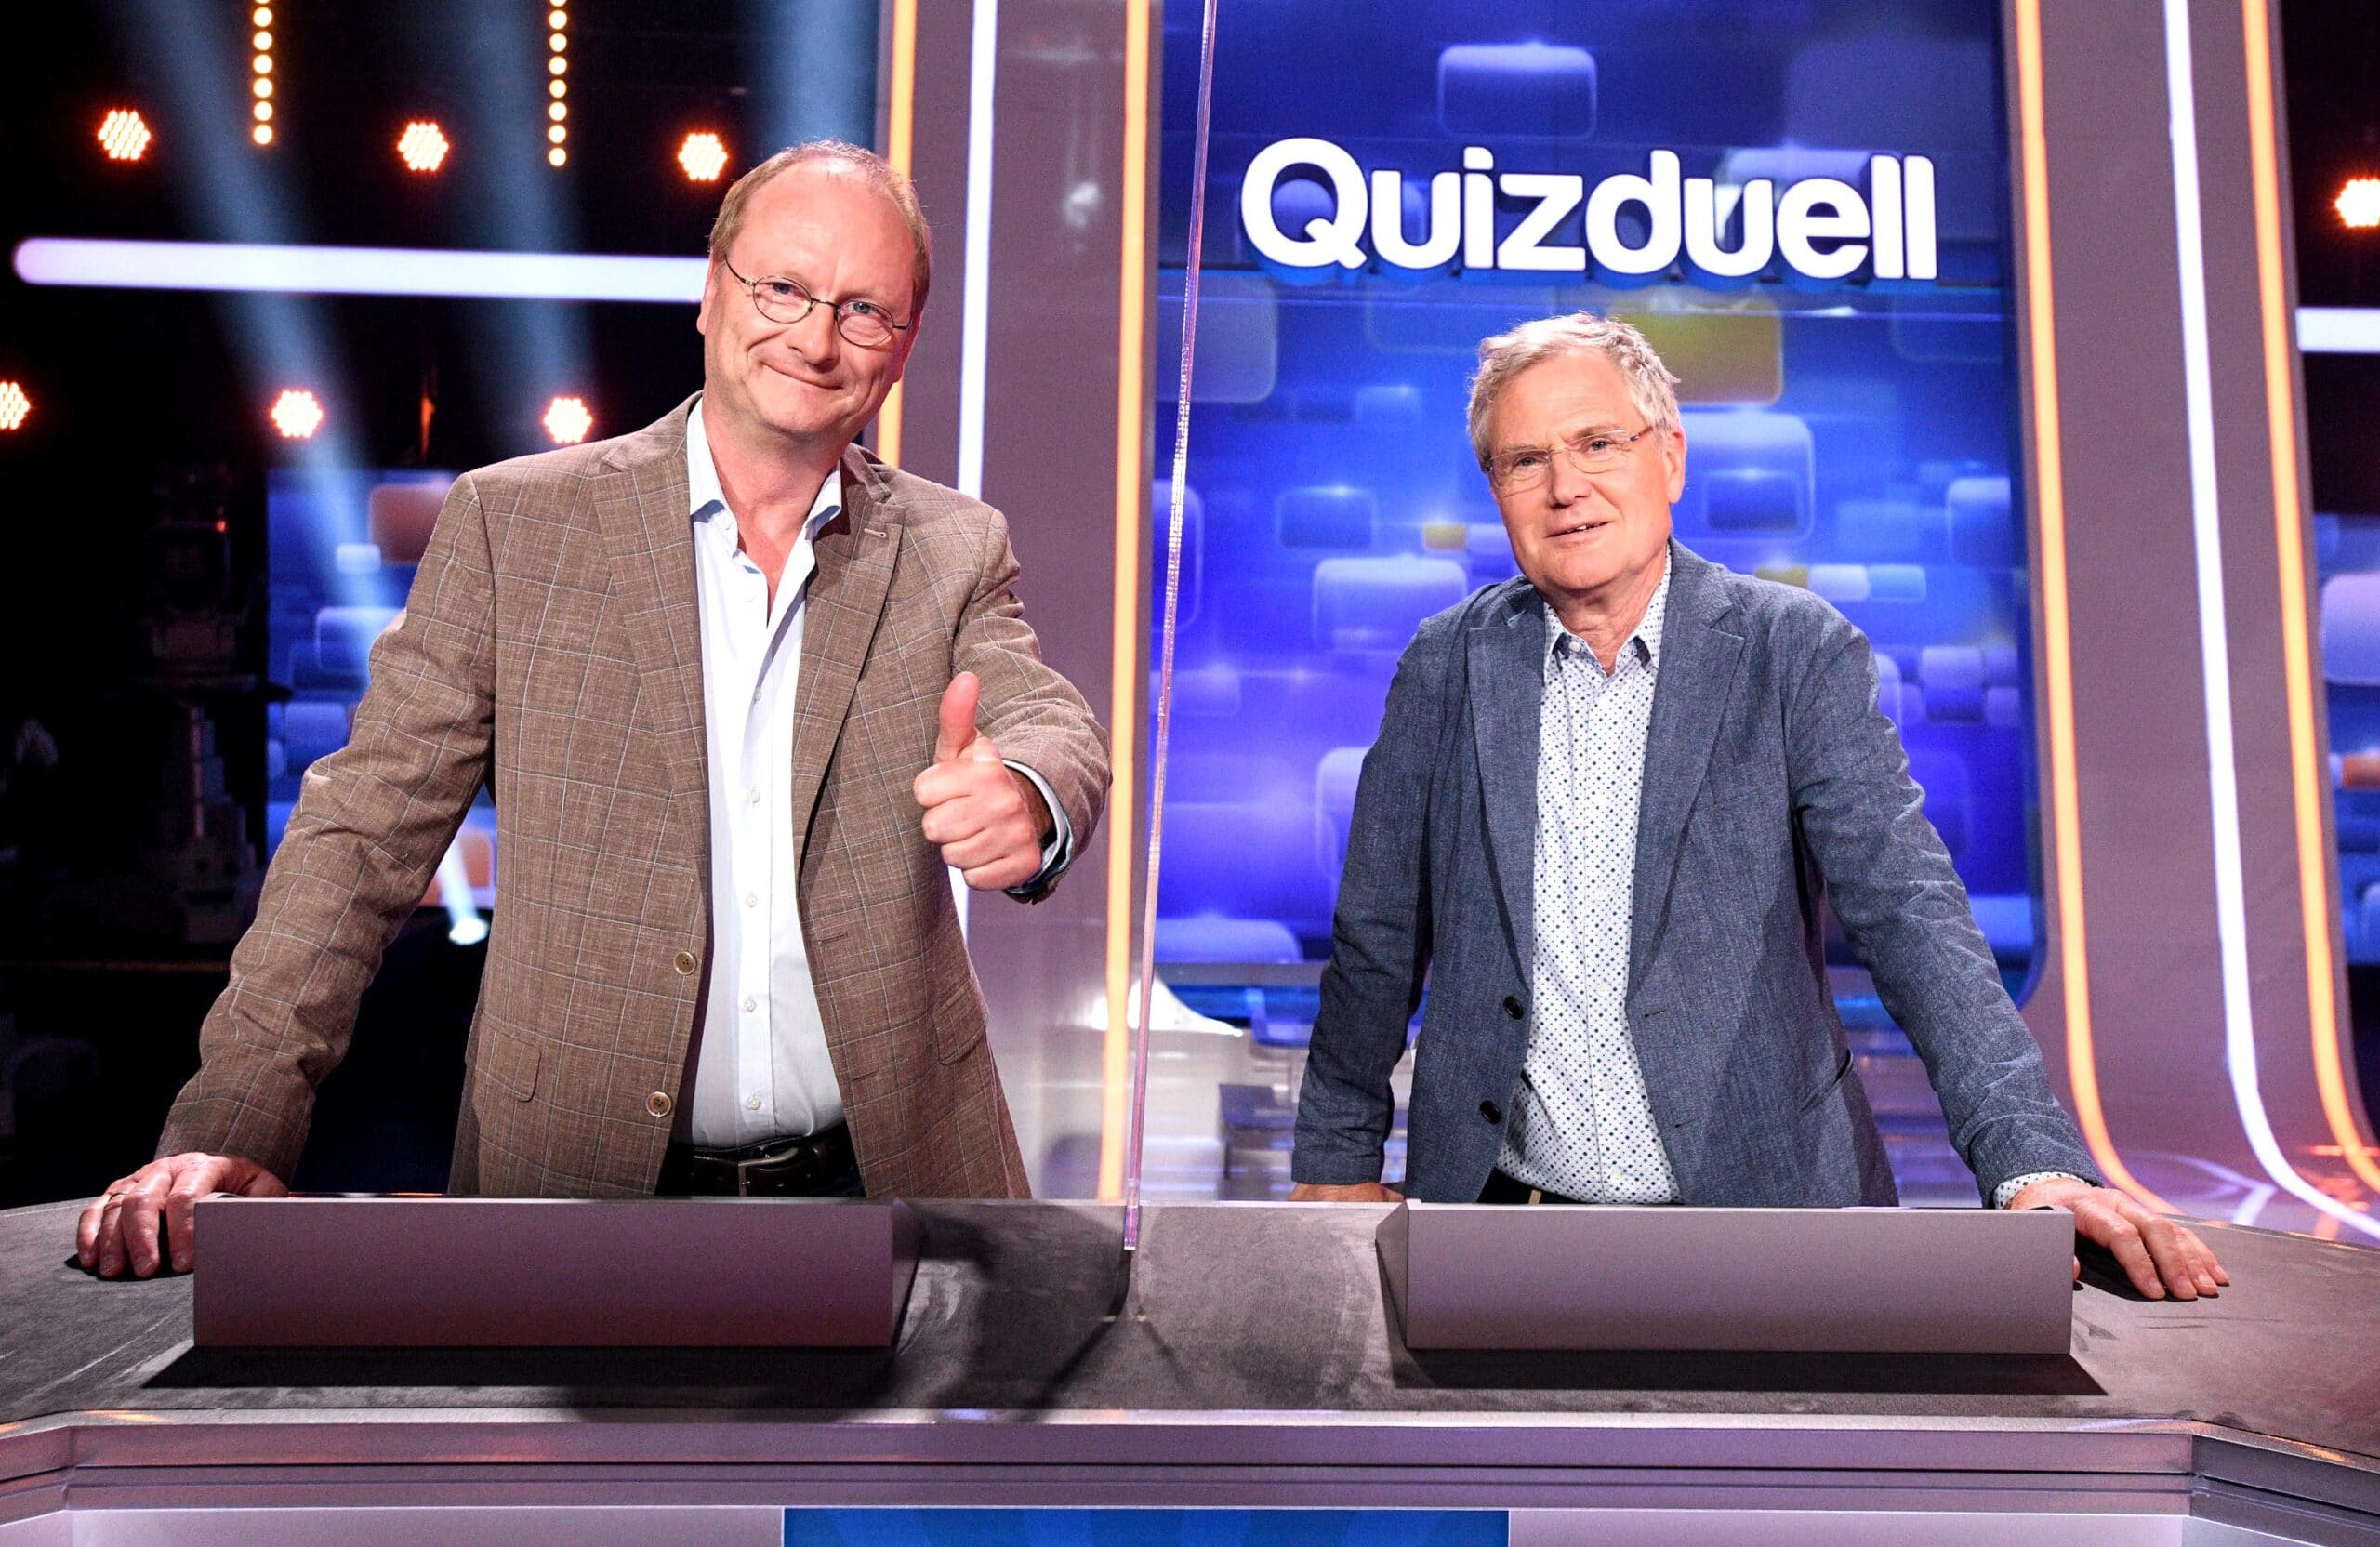 Quizduell-Olymp, Folge 338